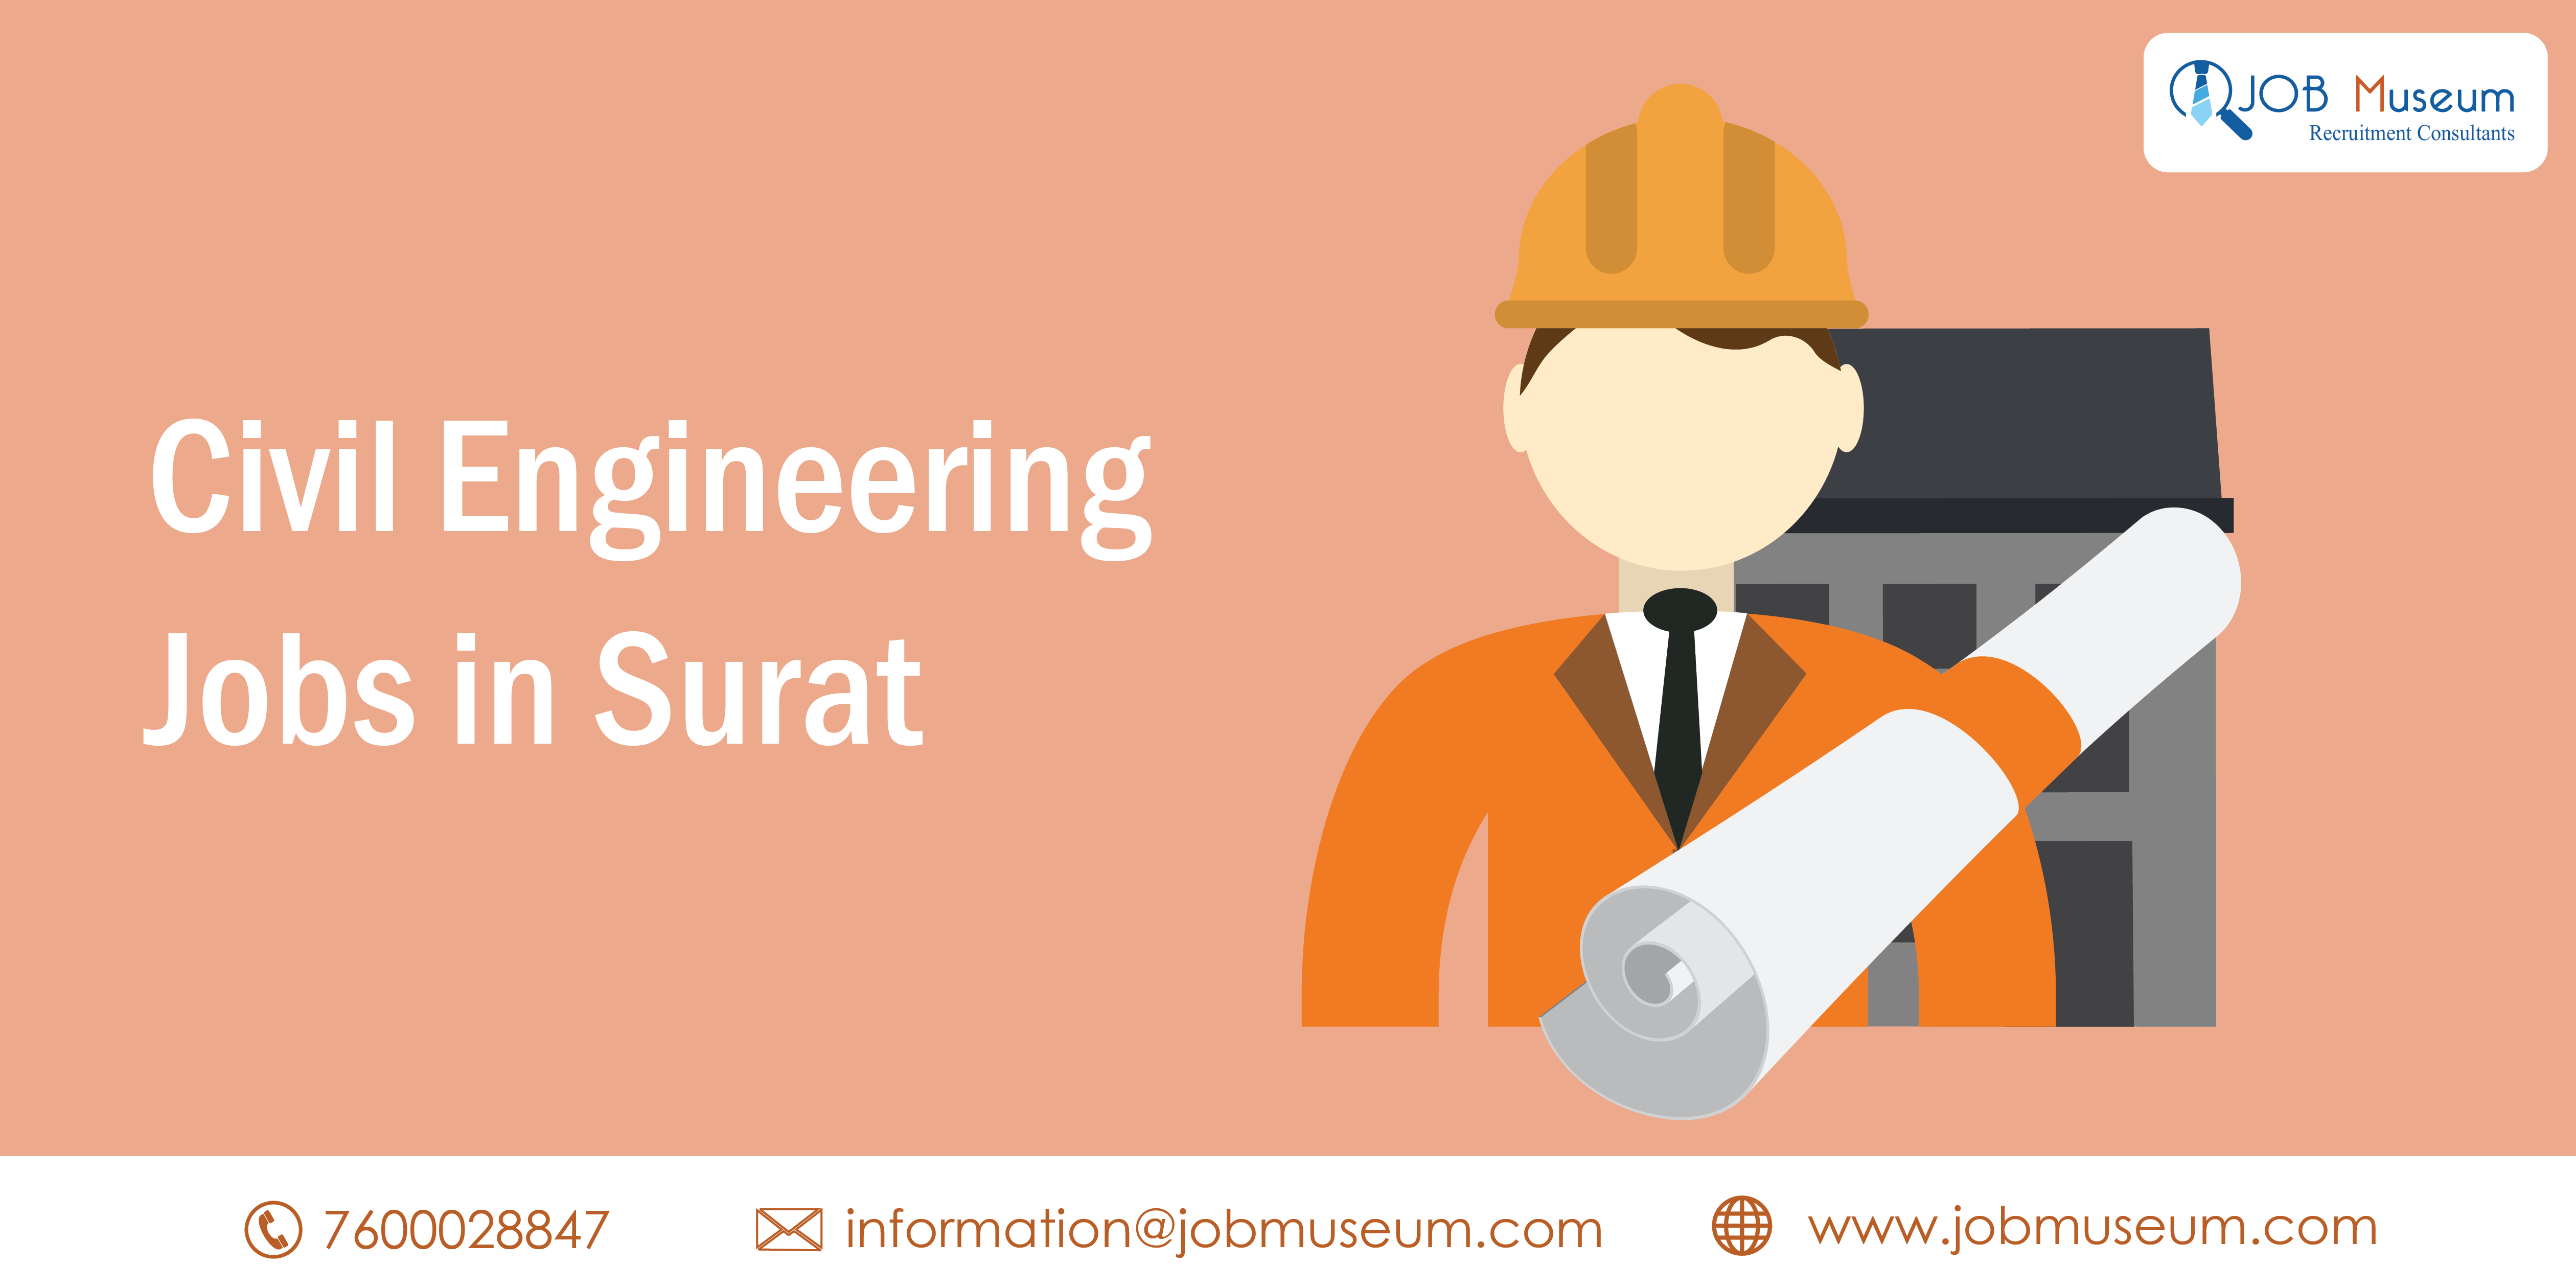 Civil Engineering Jobs In Surat Job Vacancy For Diploma Freshers Job Museum